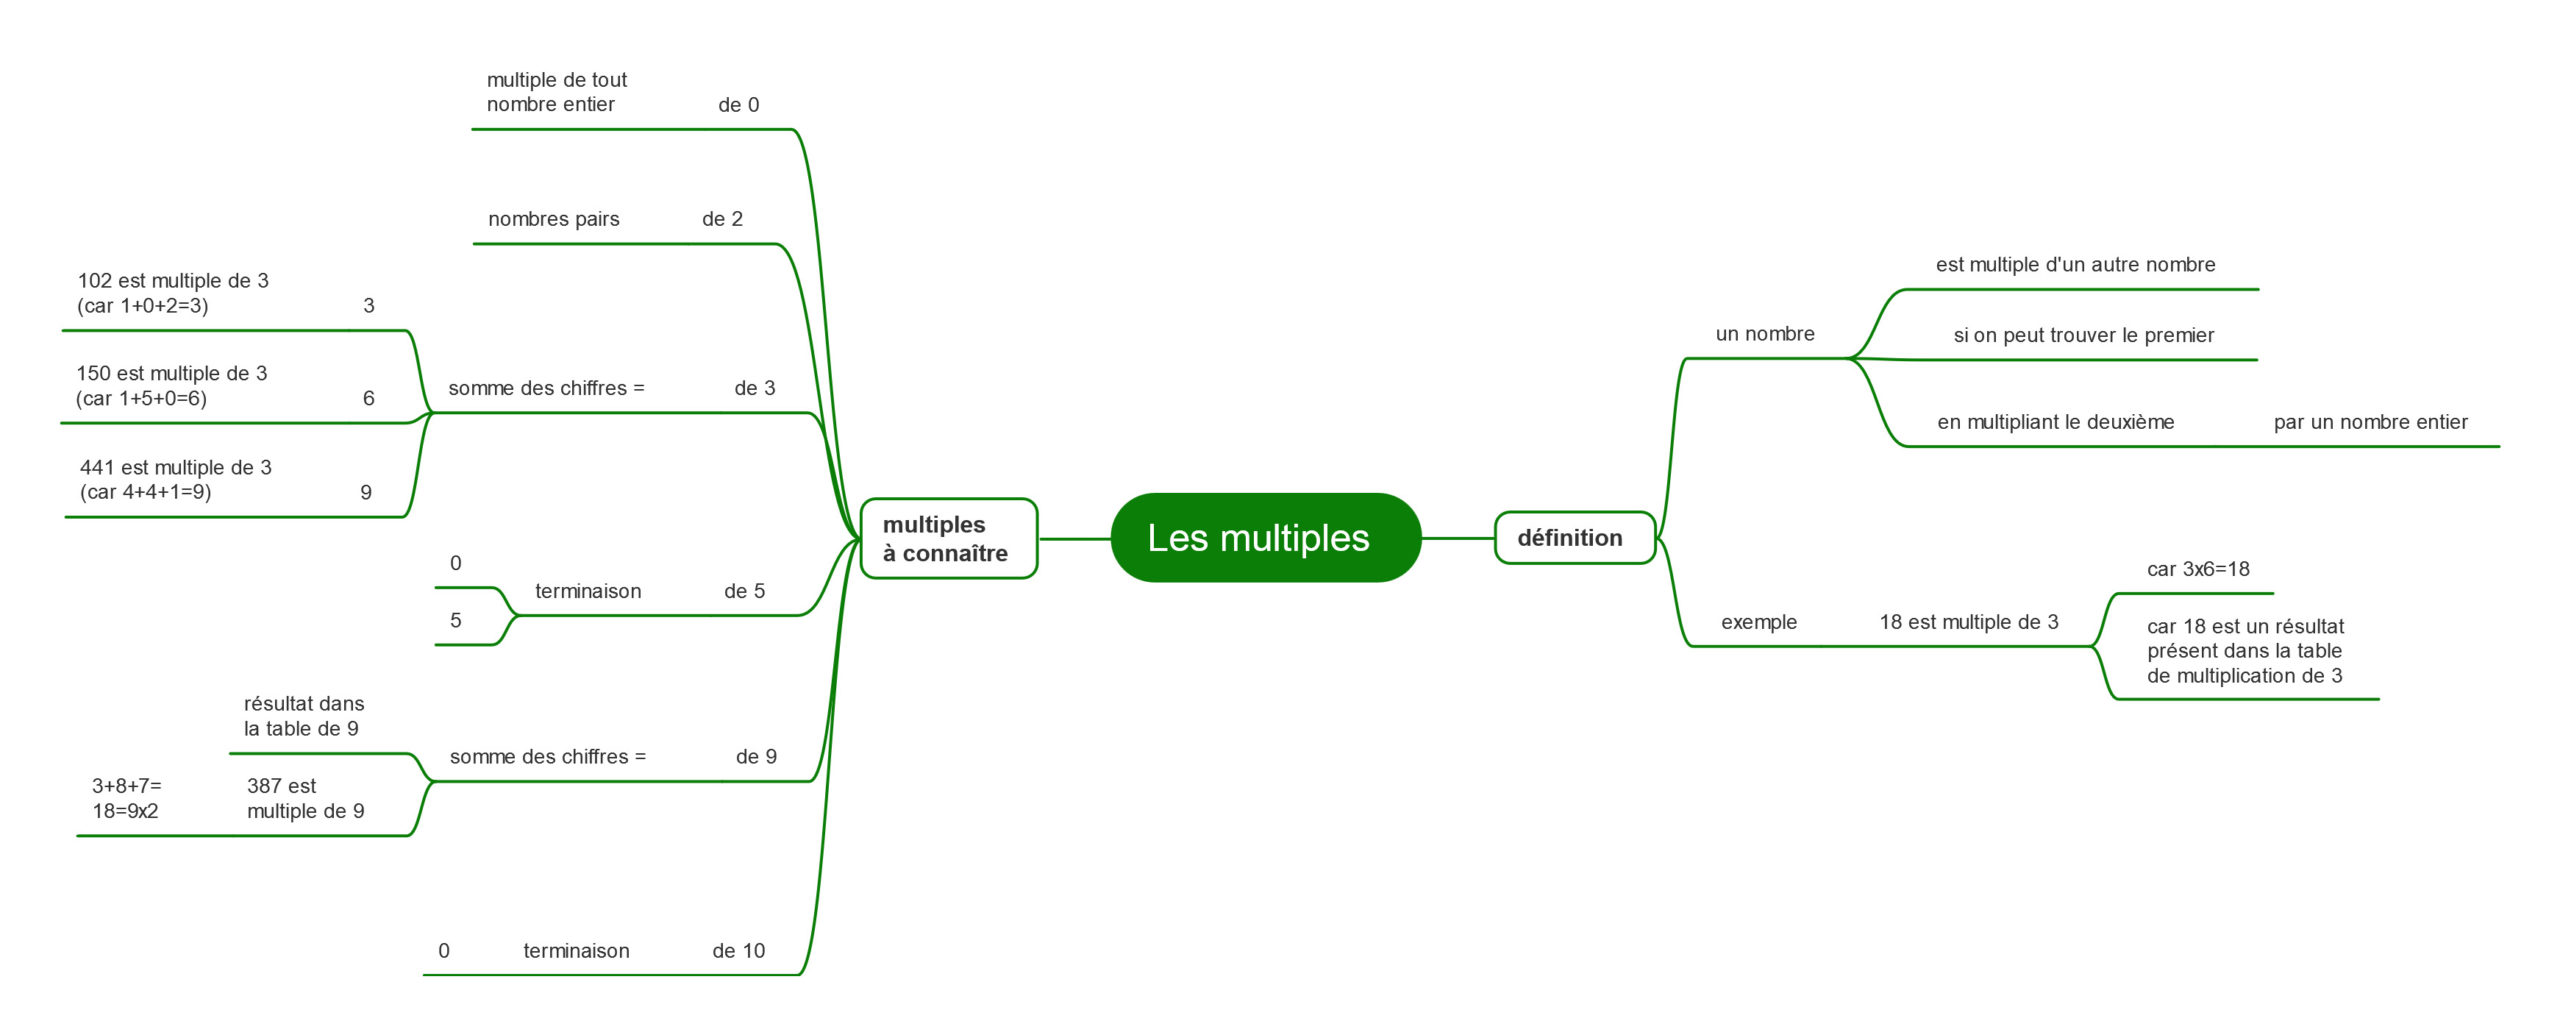 carte mentale Les multiples